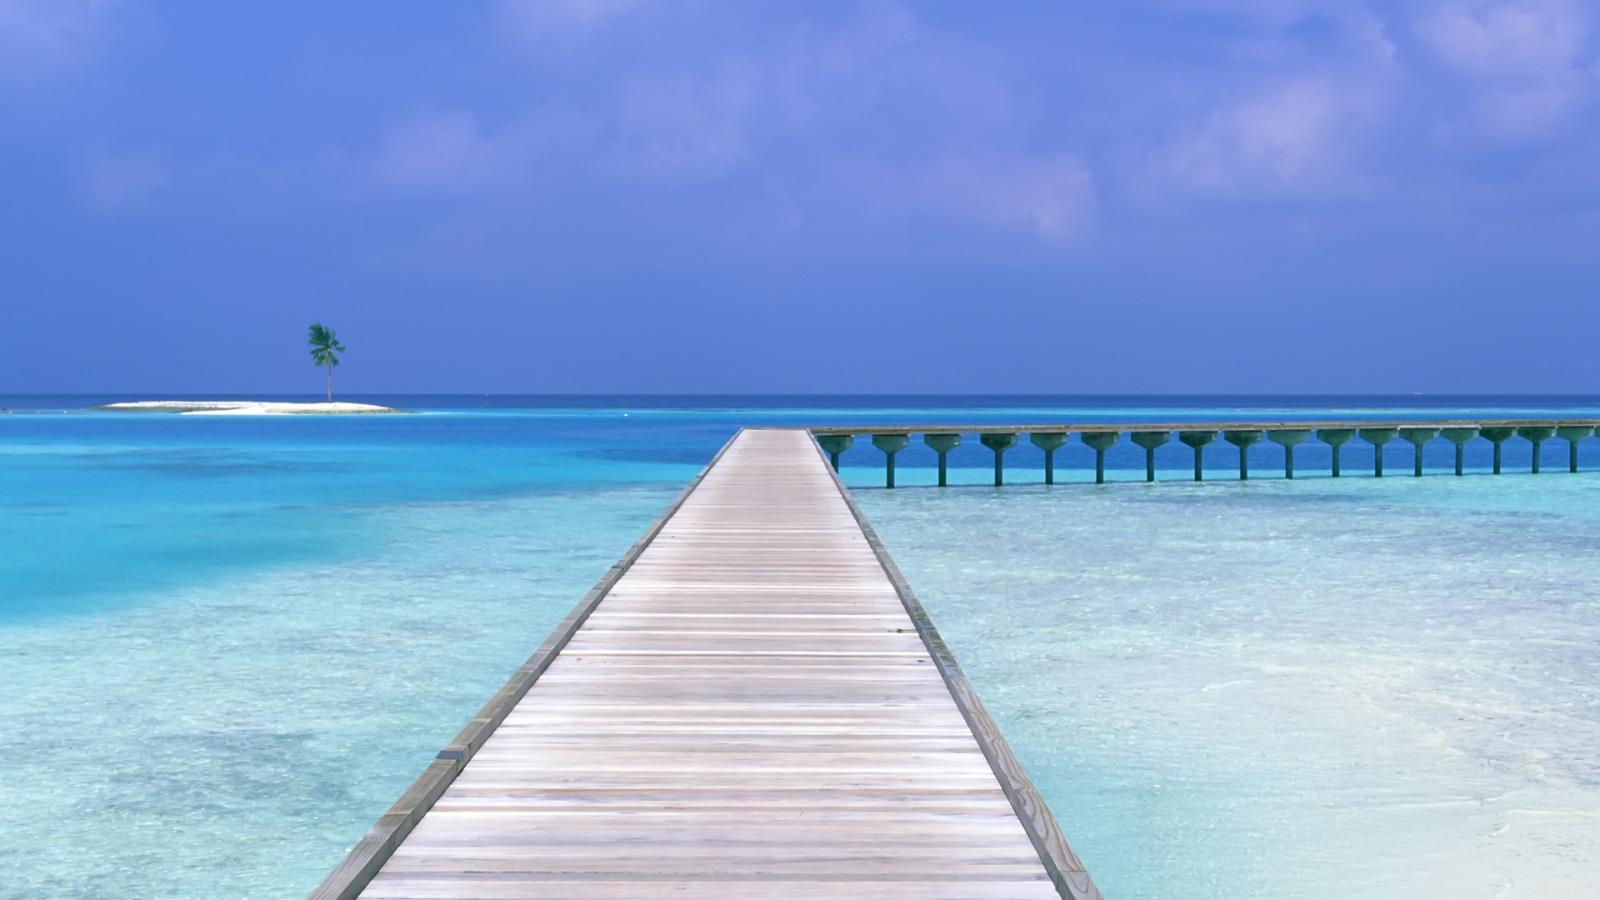 maldives dock wallpaper - photo #4